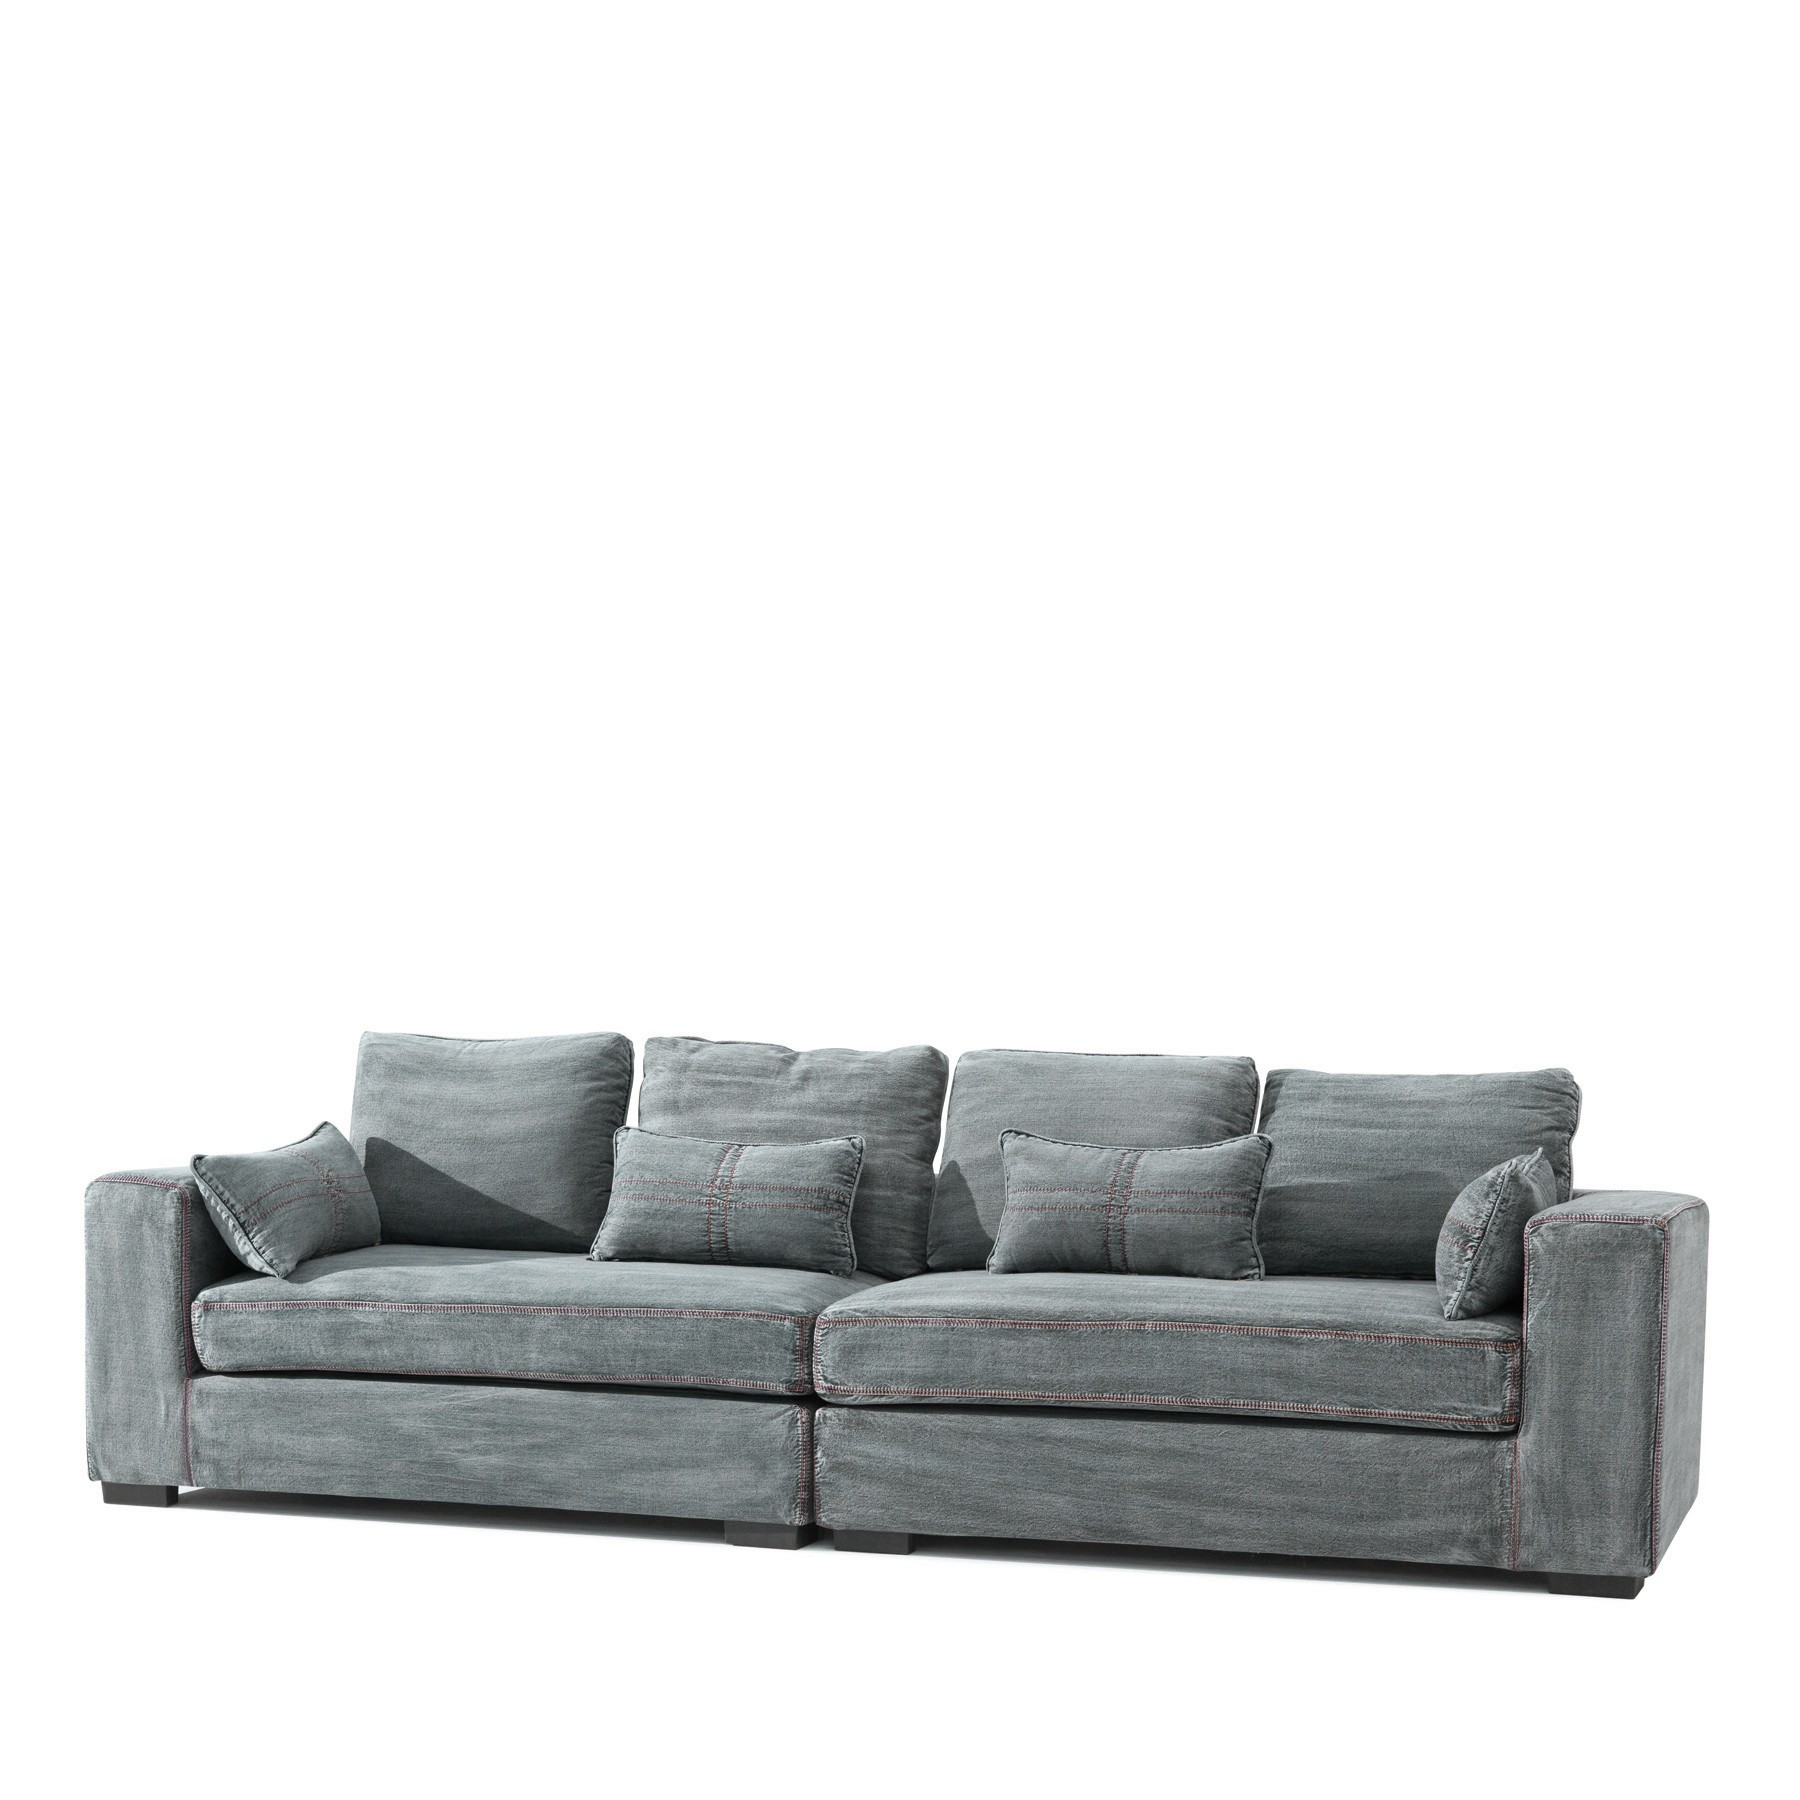 jeans sofa im online shop von trend4rooms. Black Bedroom Furniture Sets. Home Design Ideas